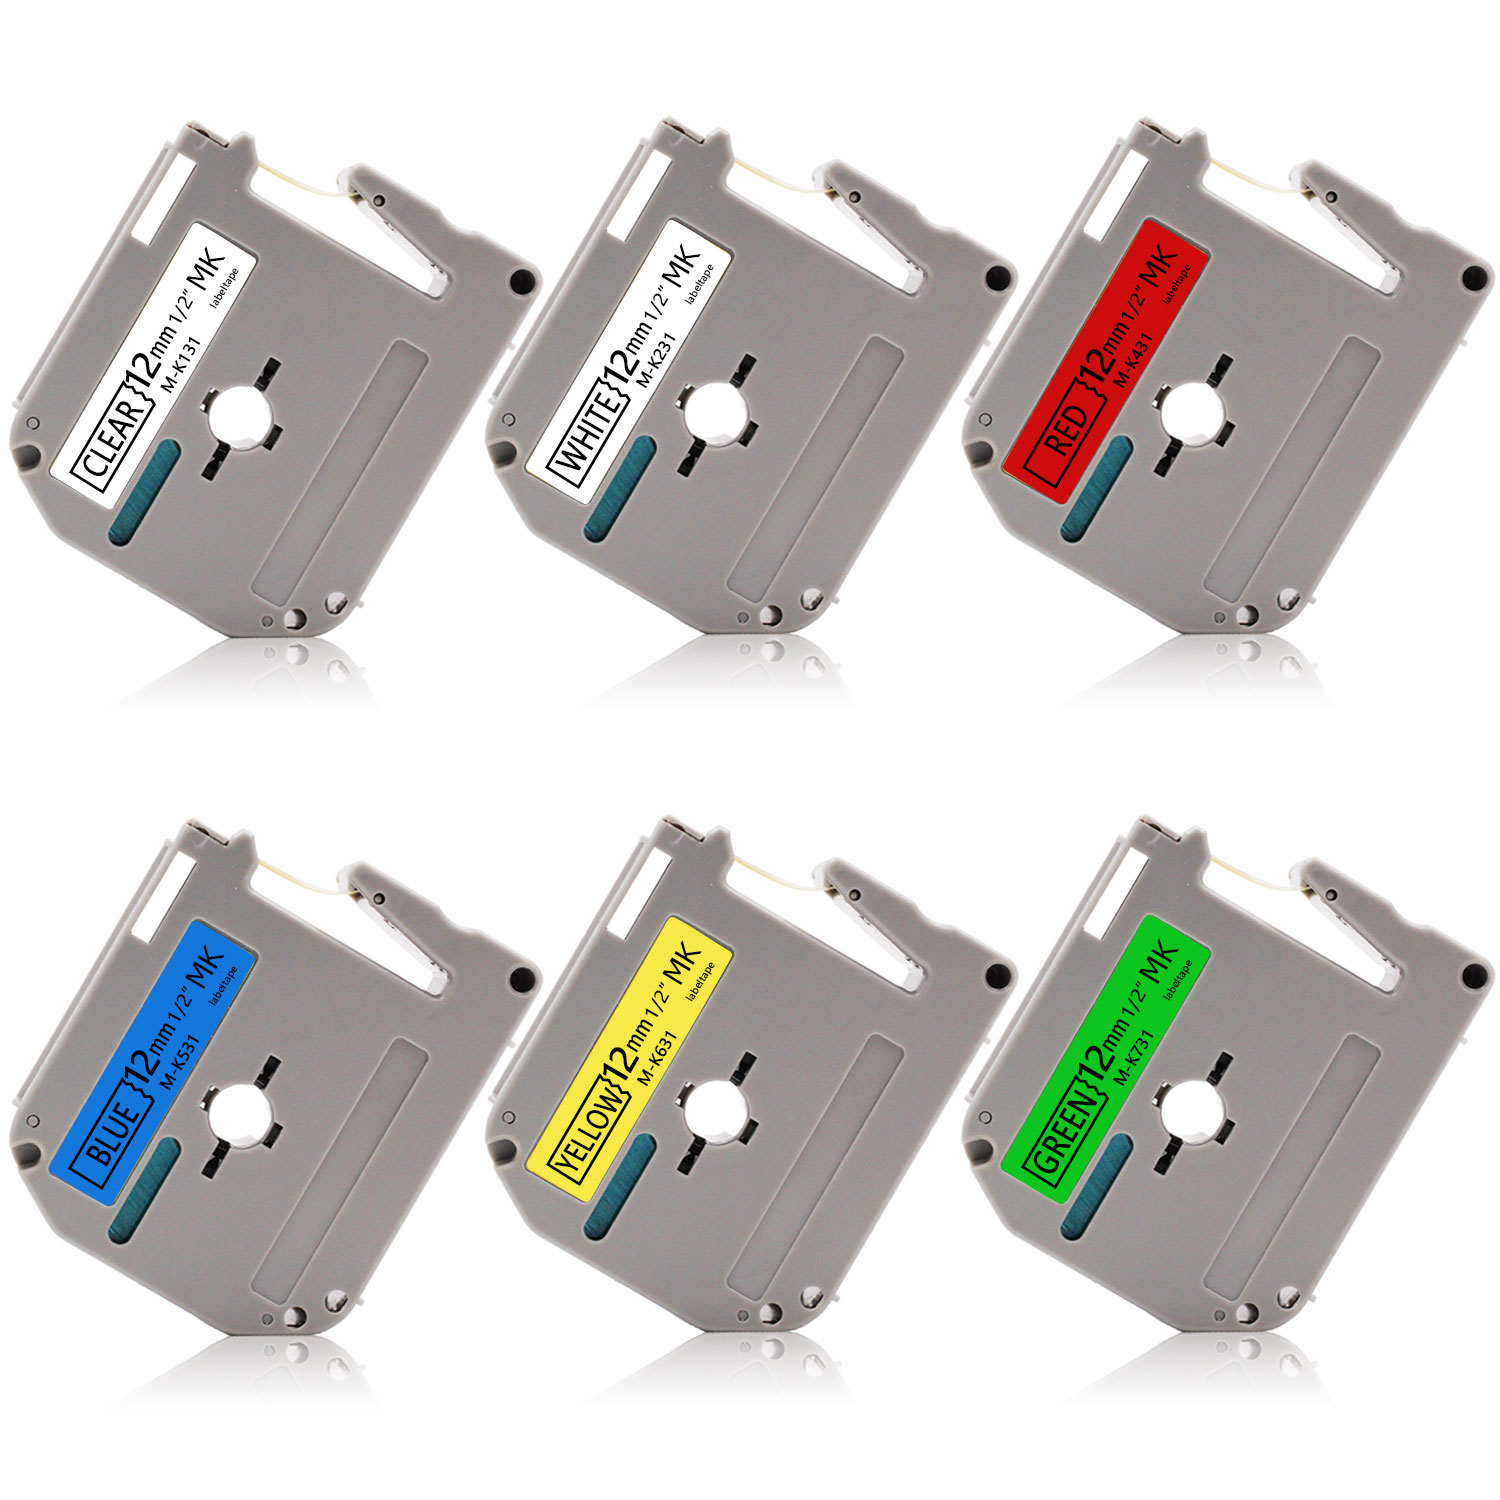 6PK Compatible Brother P-touch M131 M231 M431 M531 M631 M731 Label Tape 12mm x8m